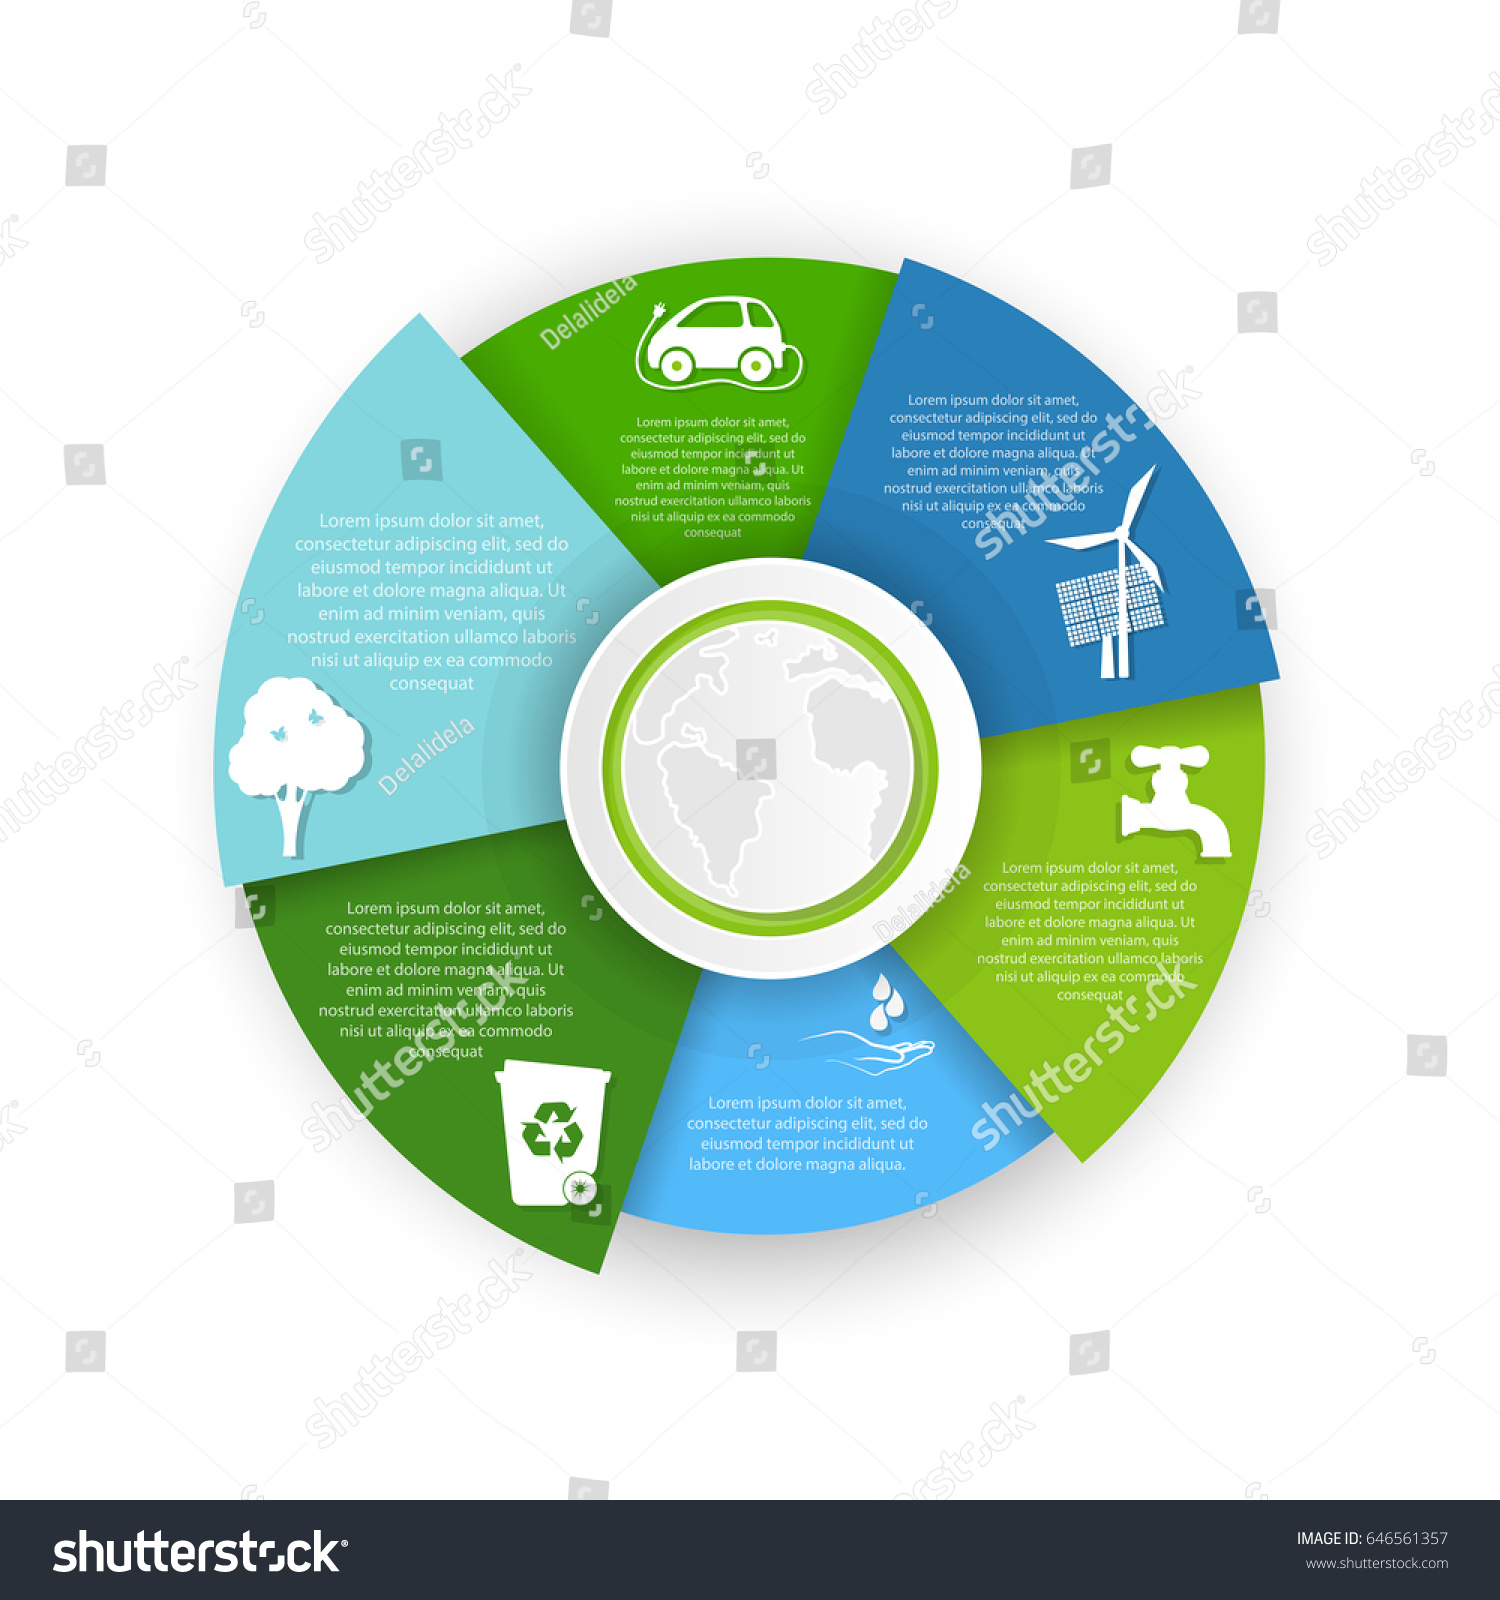 Pie chart pollution environment stock vector 646561357 shutterstock pie chart of pollution environment geenschuldenfo Images